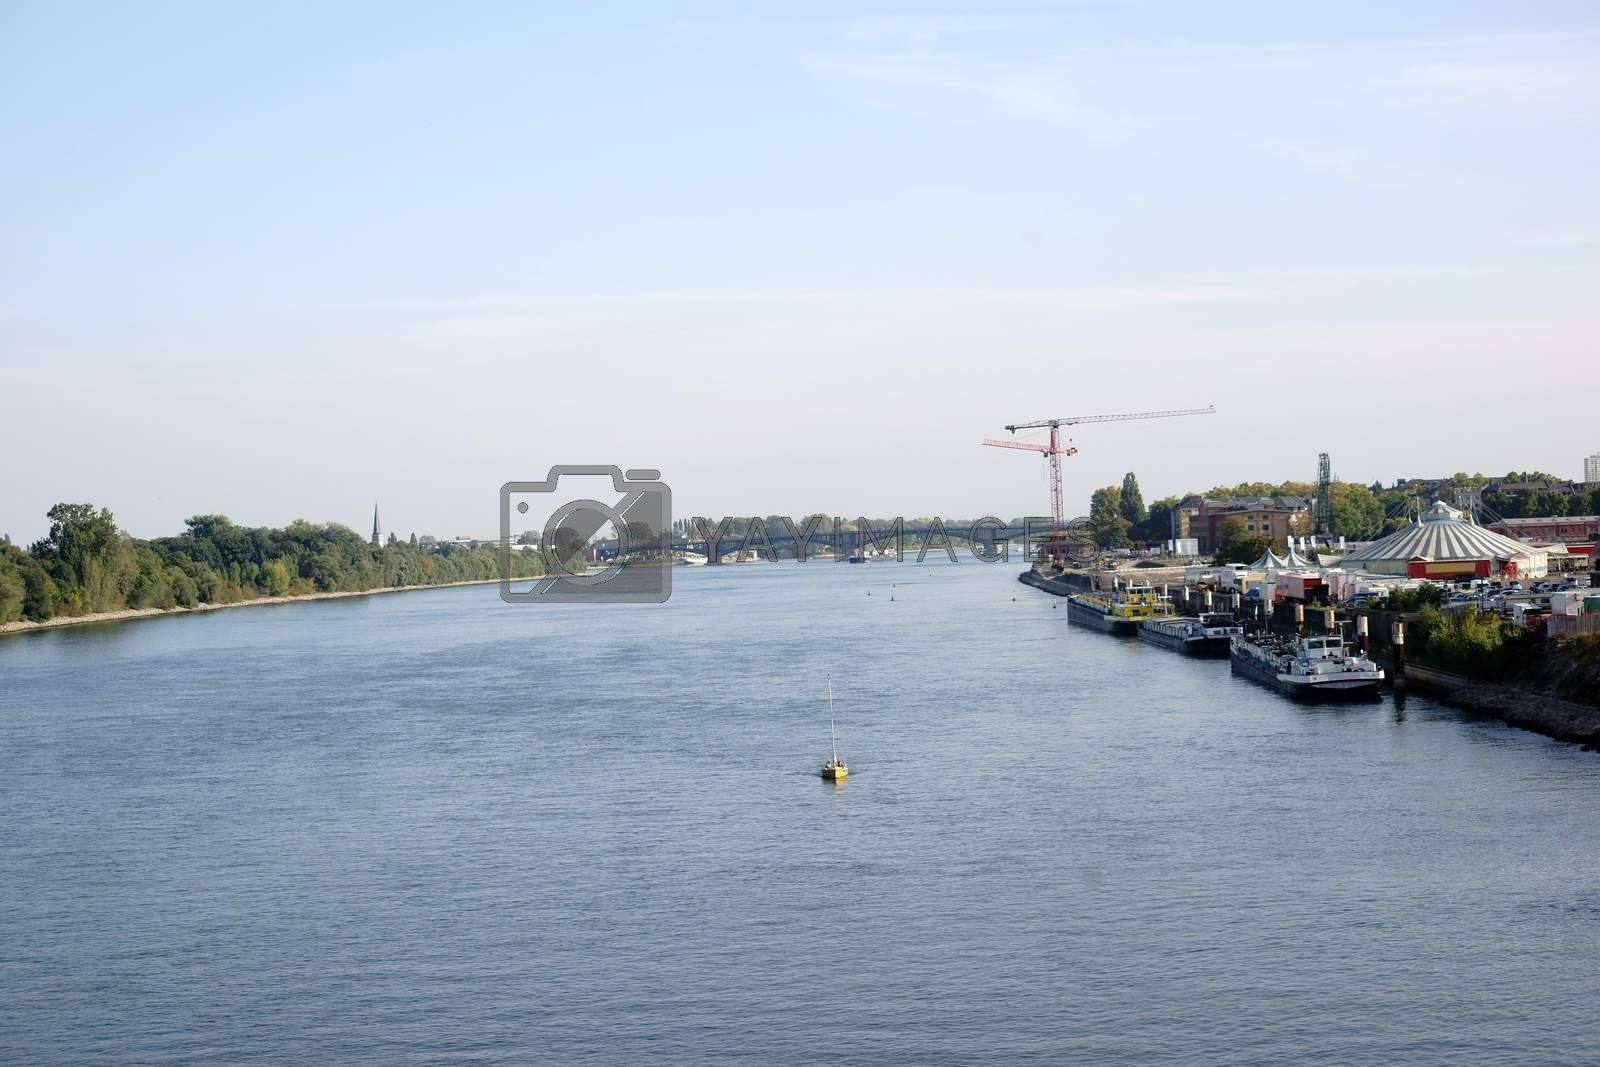 The panorama over the river Rhine at the city of Mainz with the Theodor Heuss Bridge in the background.